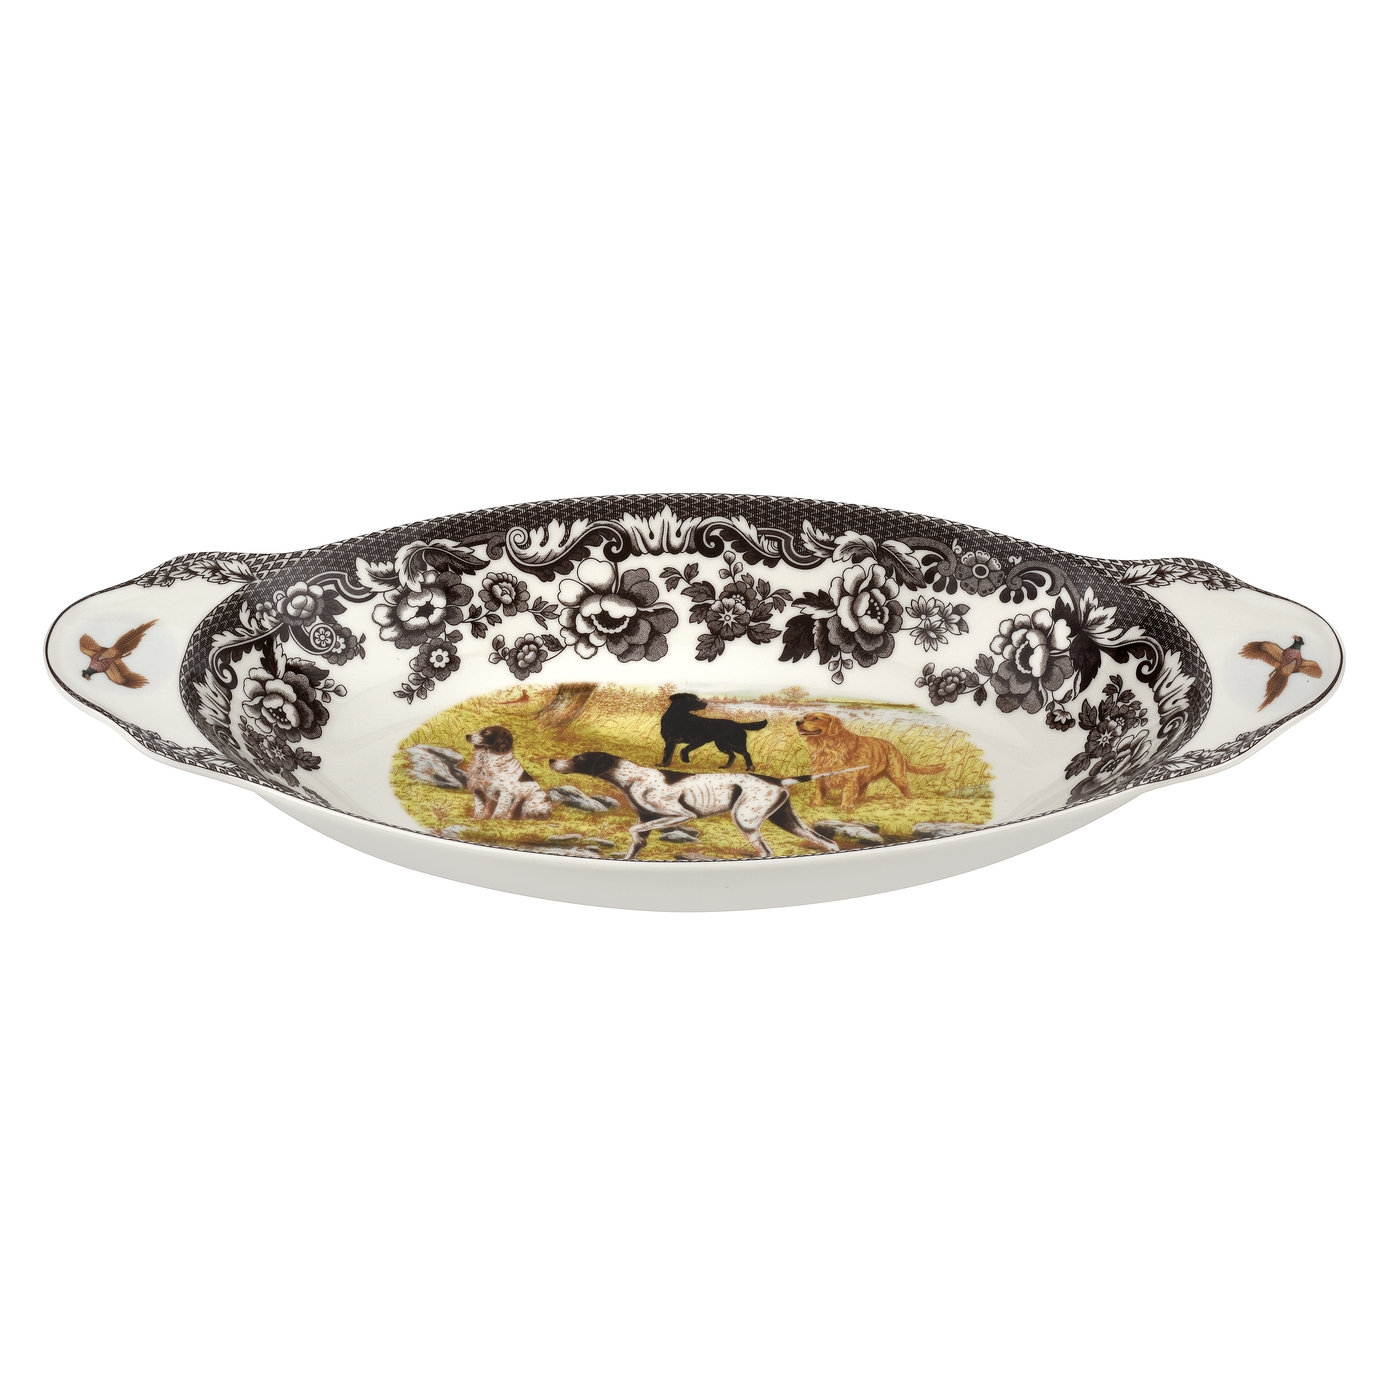 Spode Woodland Bread Tray 15.25 Inch (Dog Scene) image number 0